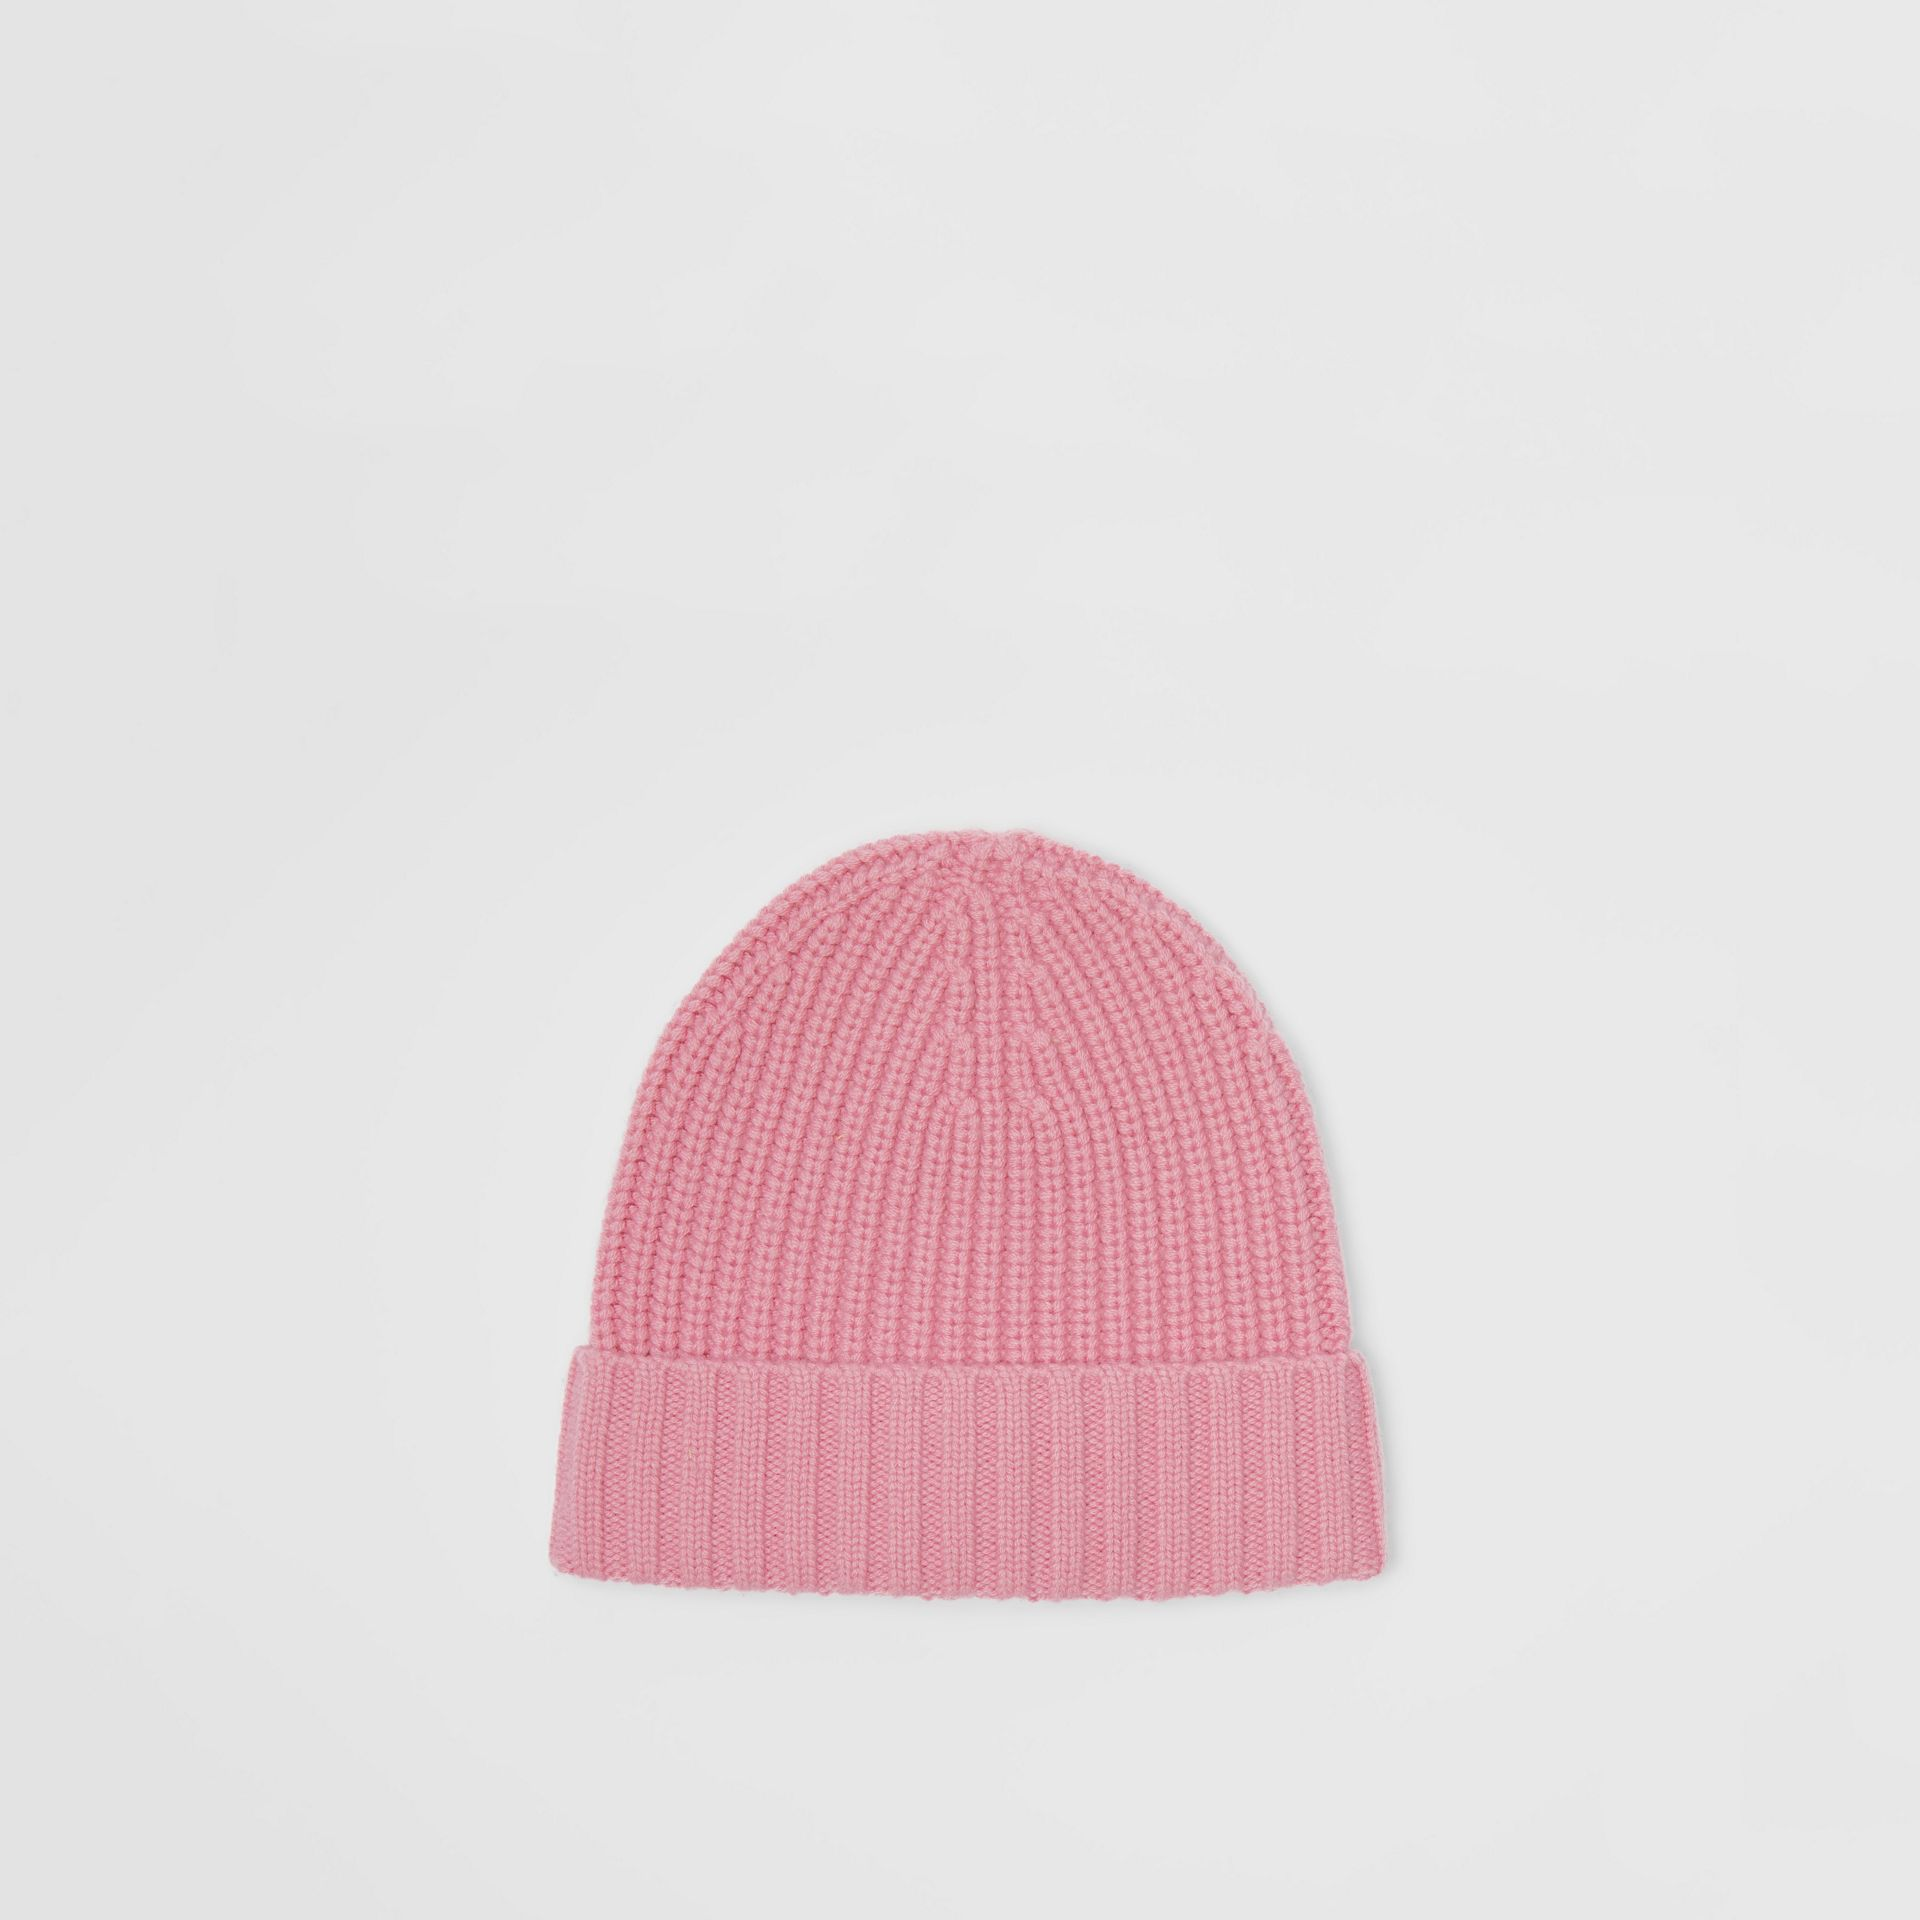 Embroidered Crest Rib Knit Wool Cashmere Beanie in Rose Pink | Burberry United Kingdom - gallery image 4